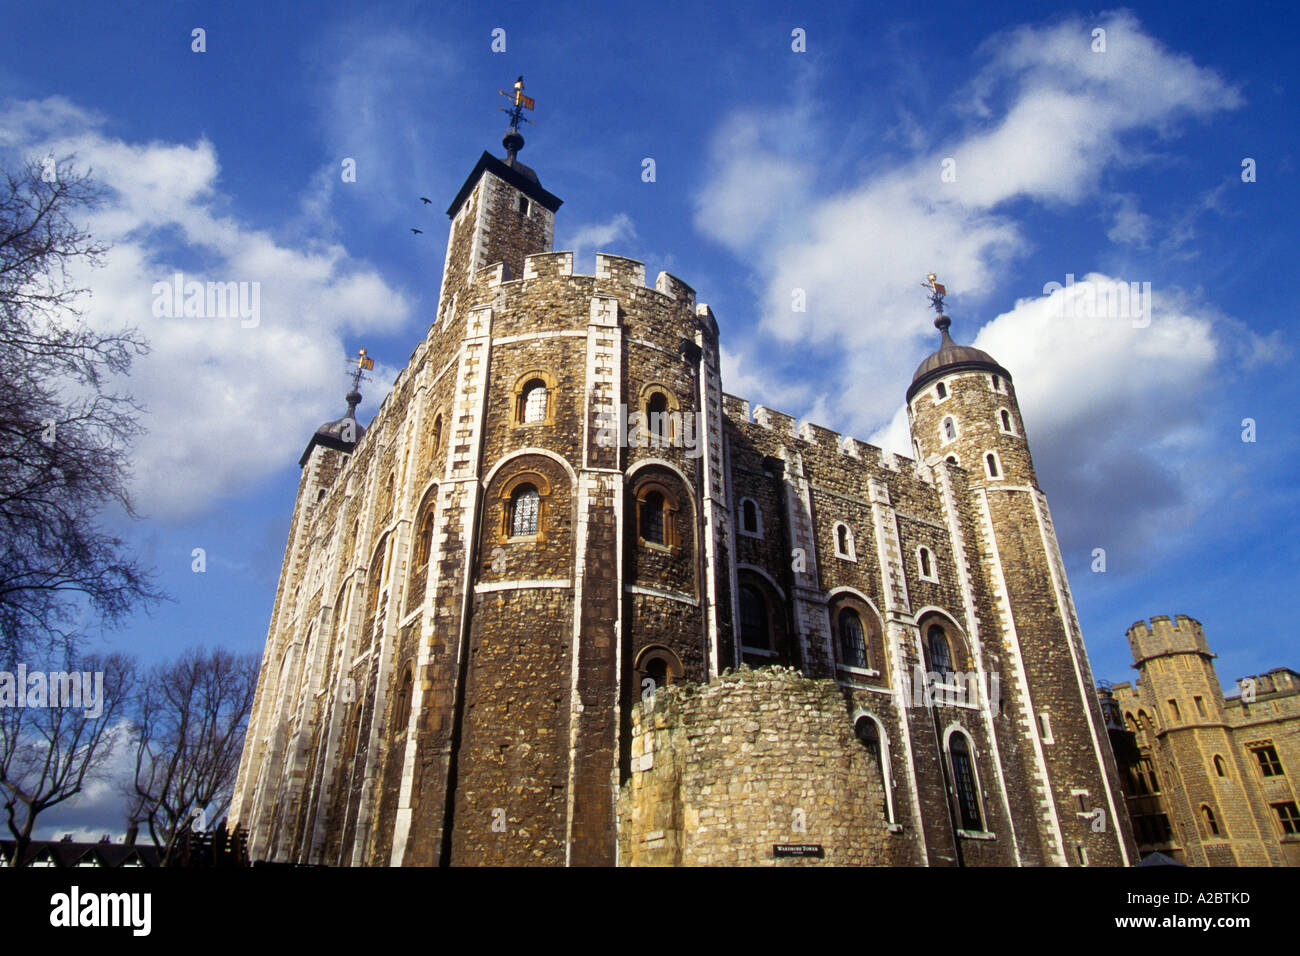 Tower of London built by William the Conqueror Great Britain UK London White Tower - Stock Image